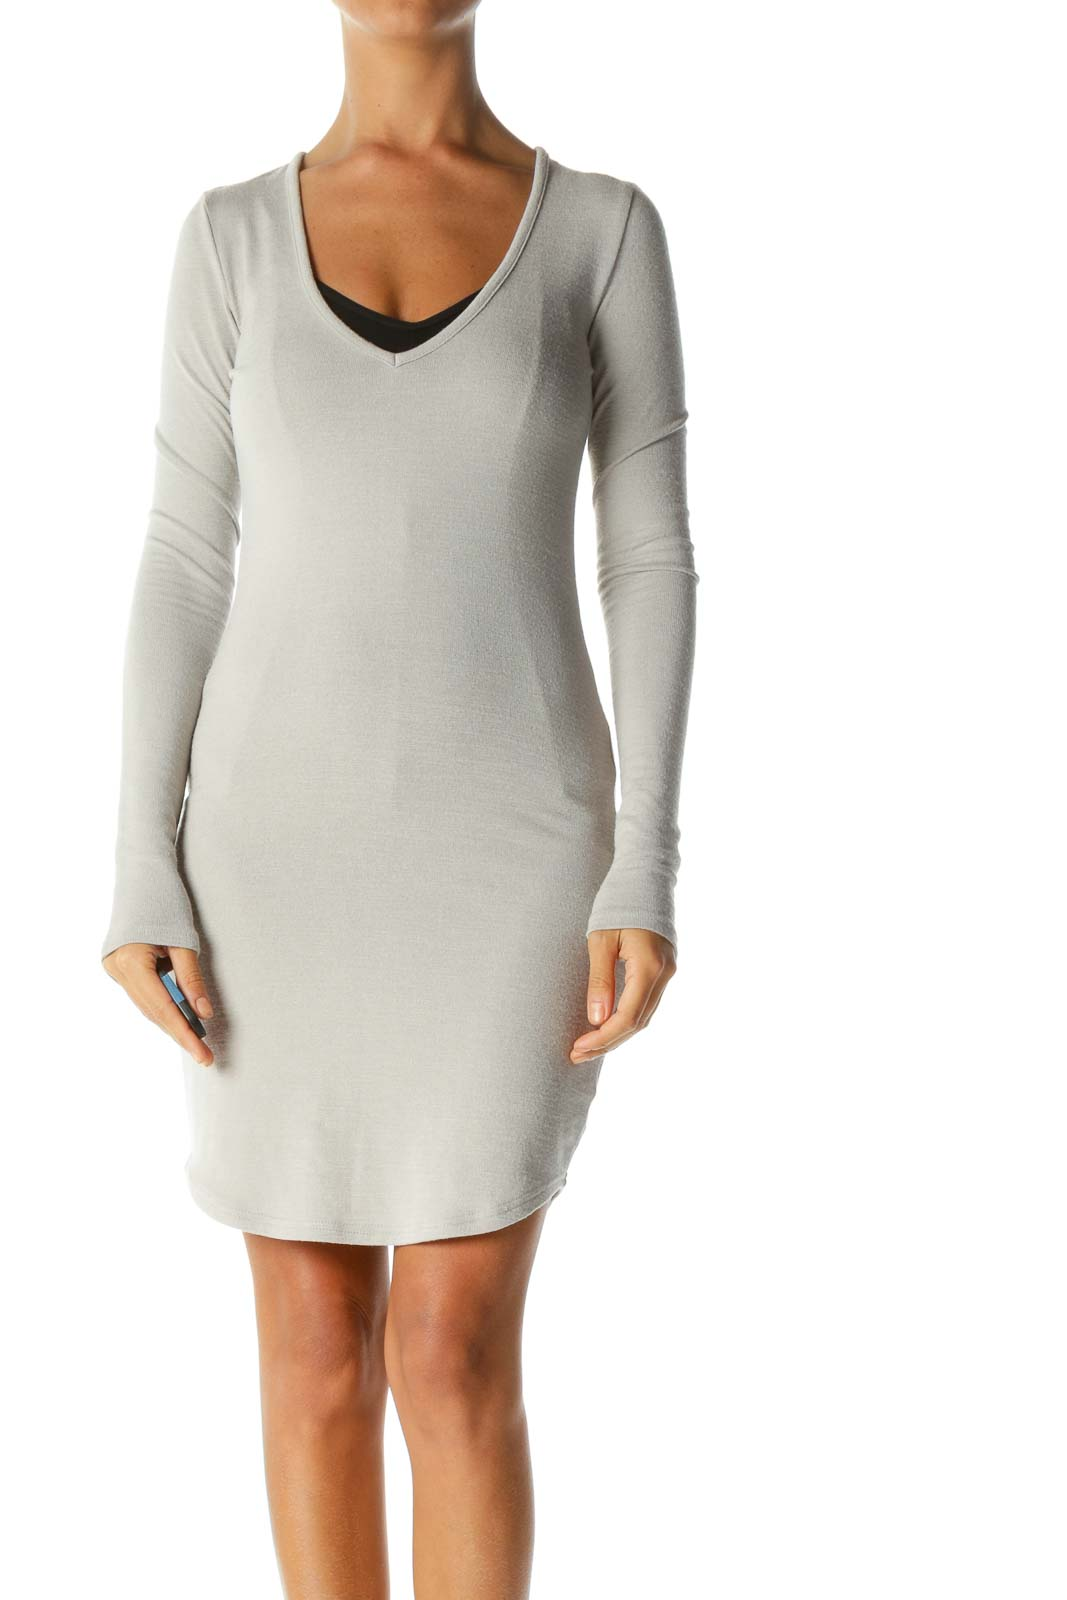 Beige V-Neck Stretch Long-Sleeve Knit Dress Front